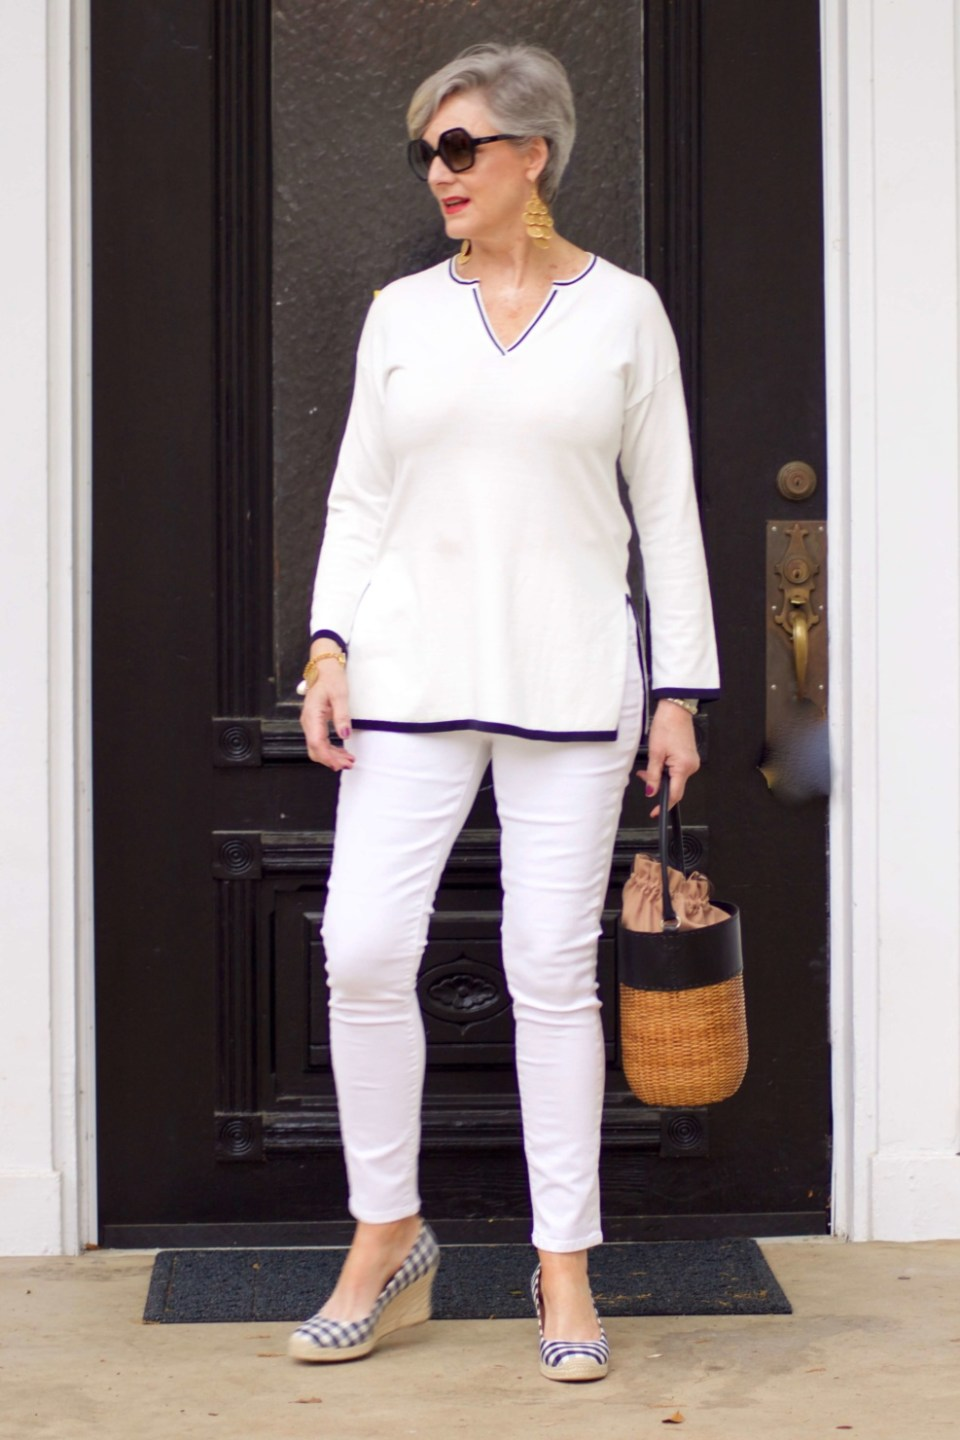 beth from Style at a Certain Age wears a monochromatic white outfit. white tunic trimmed in blue, white jeans and gingham espadrilles